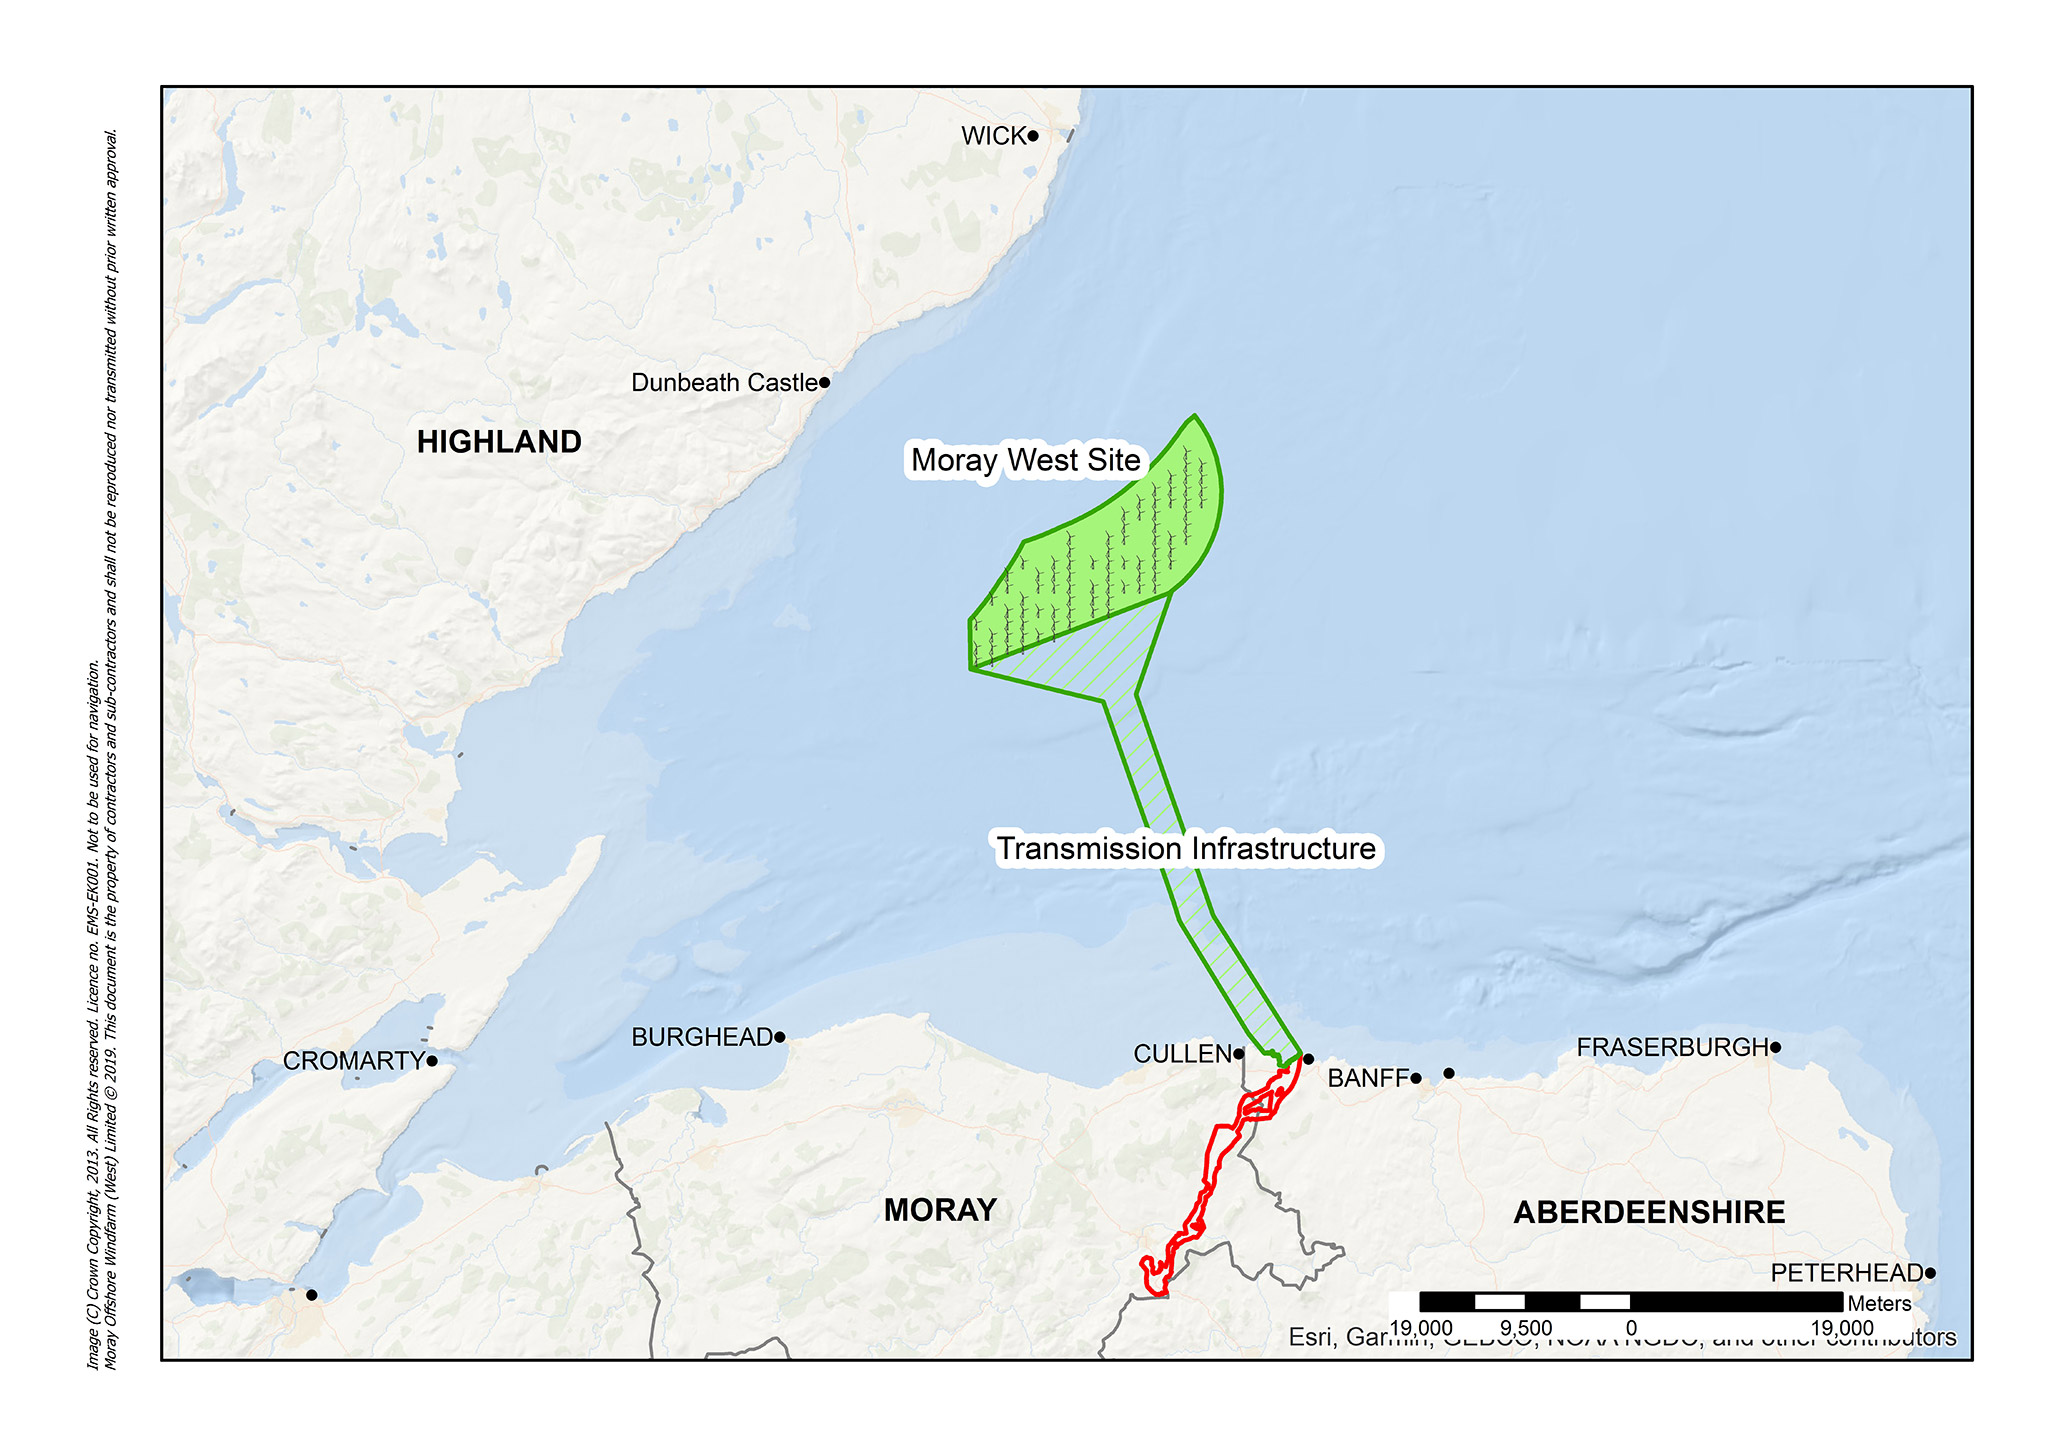 Moray West Site in the Moray Firth